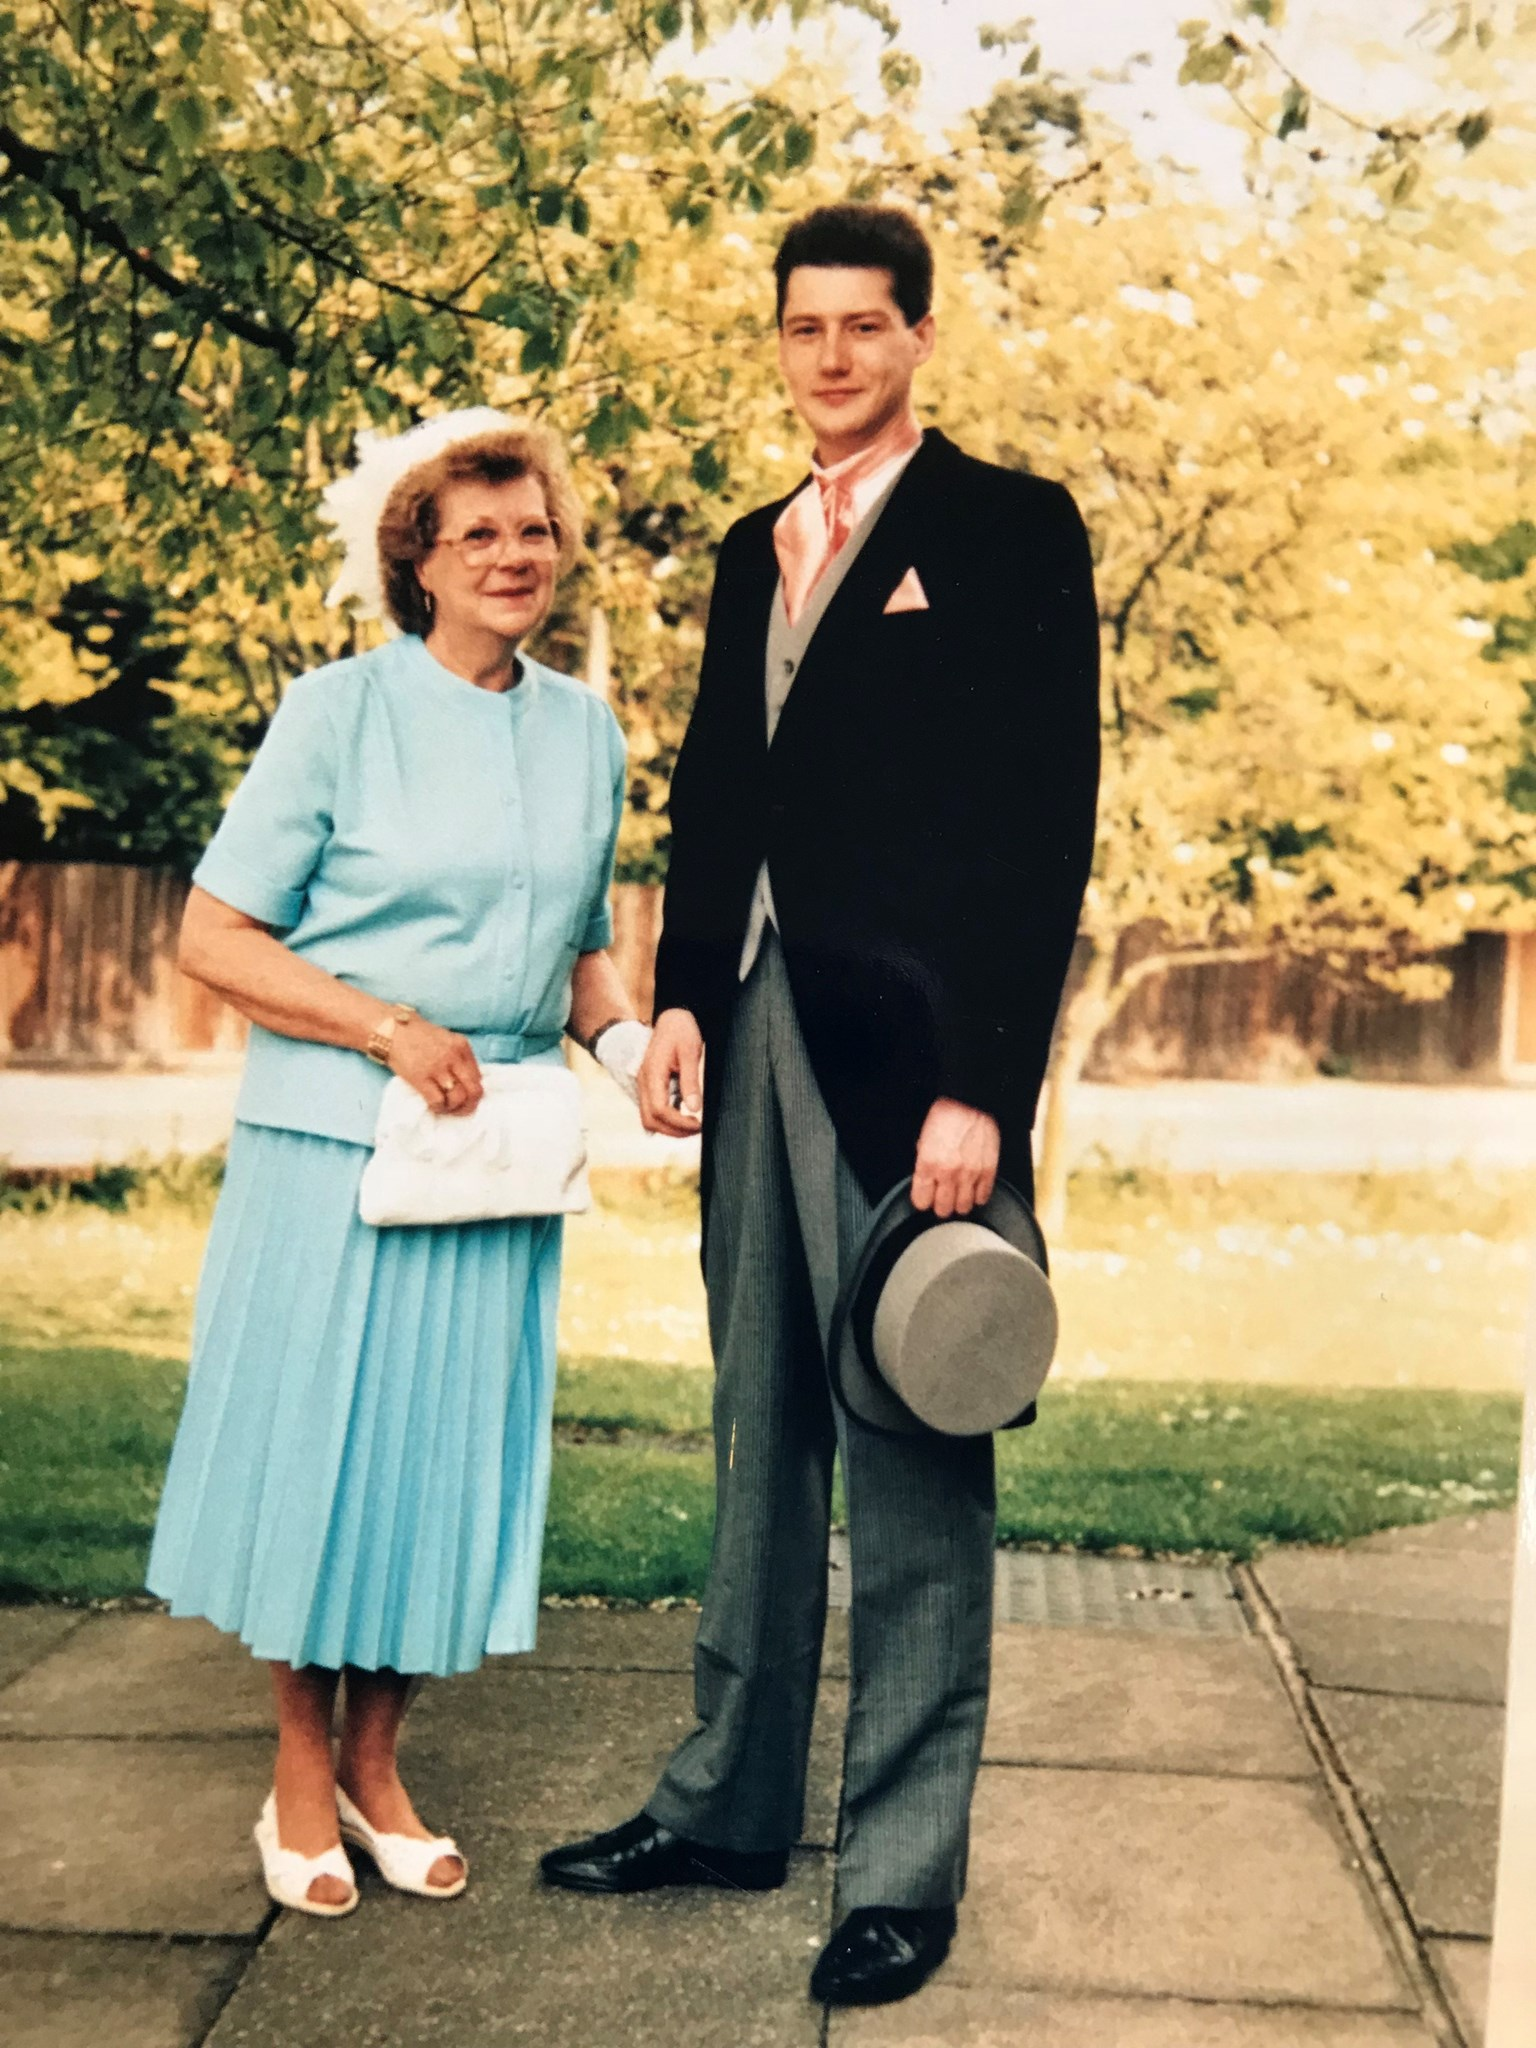 Jim and his Mum - our Wedding - 14th May 1988